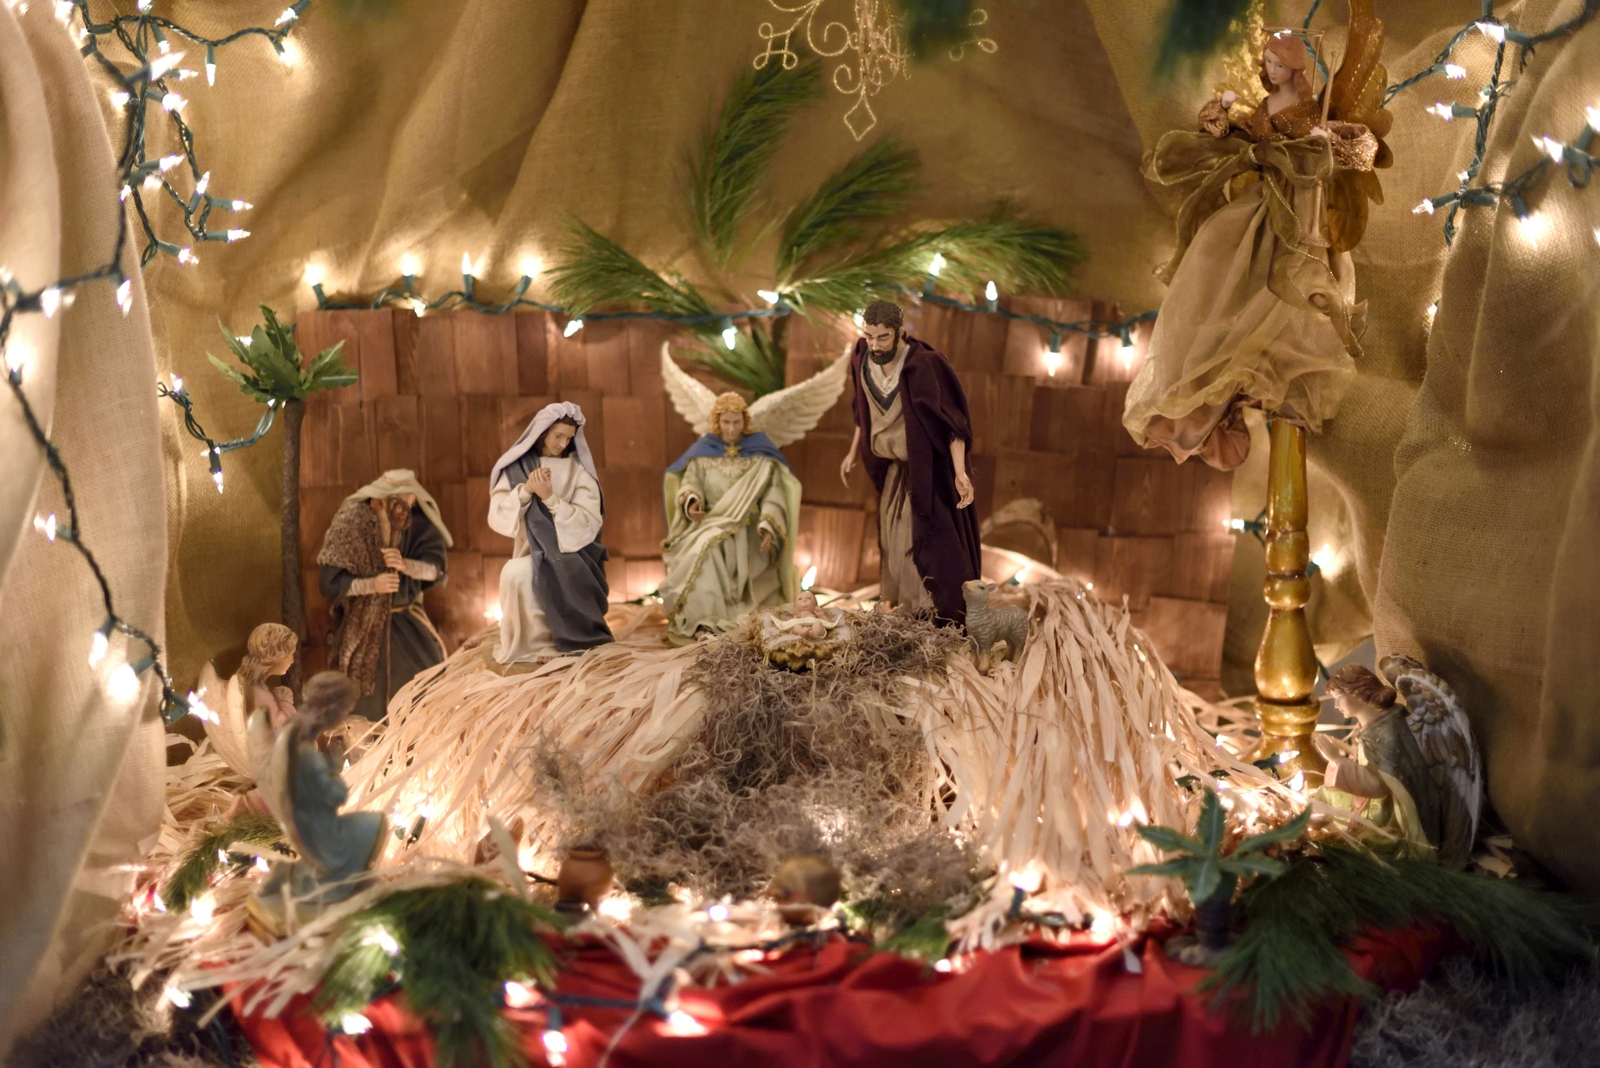 Christmas at ICC - December 24, 2016